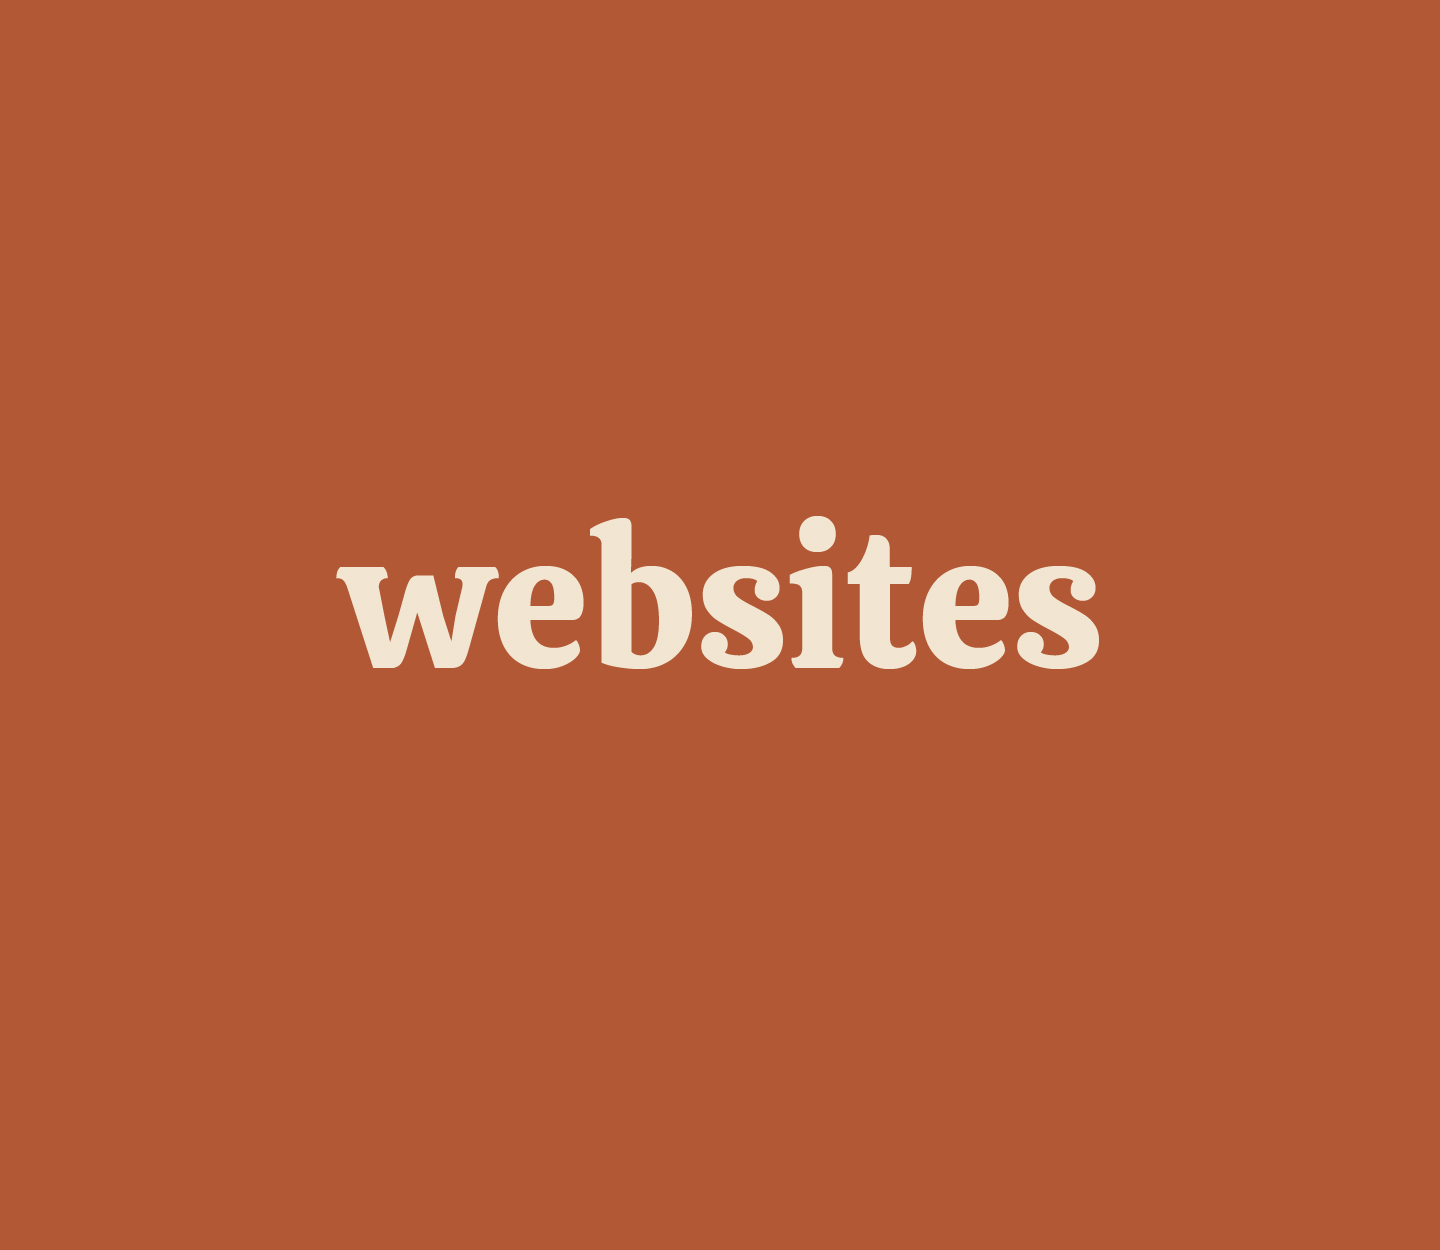 services-nh-websites